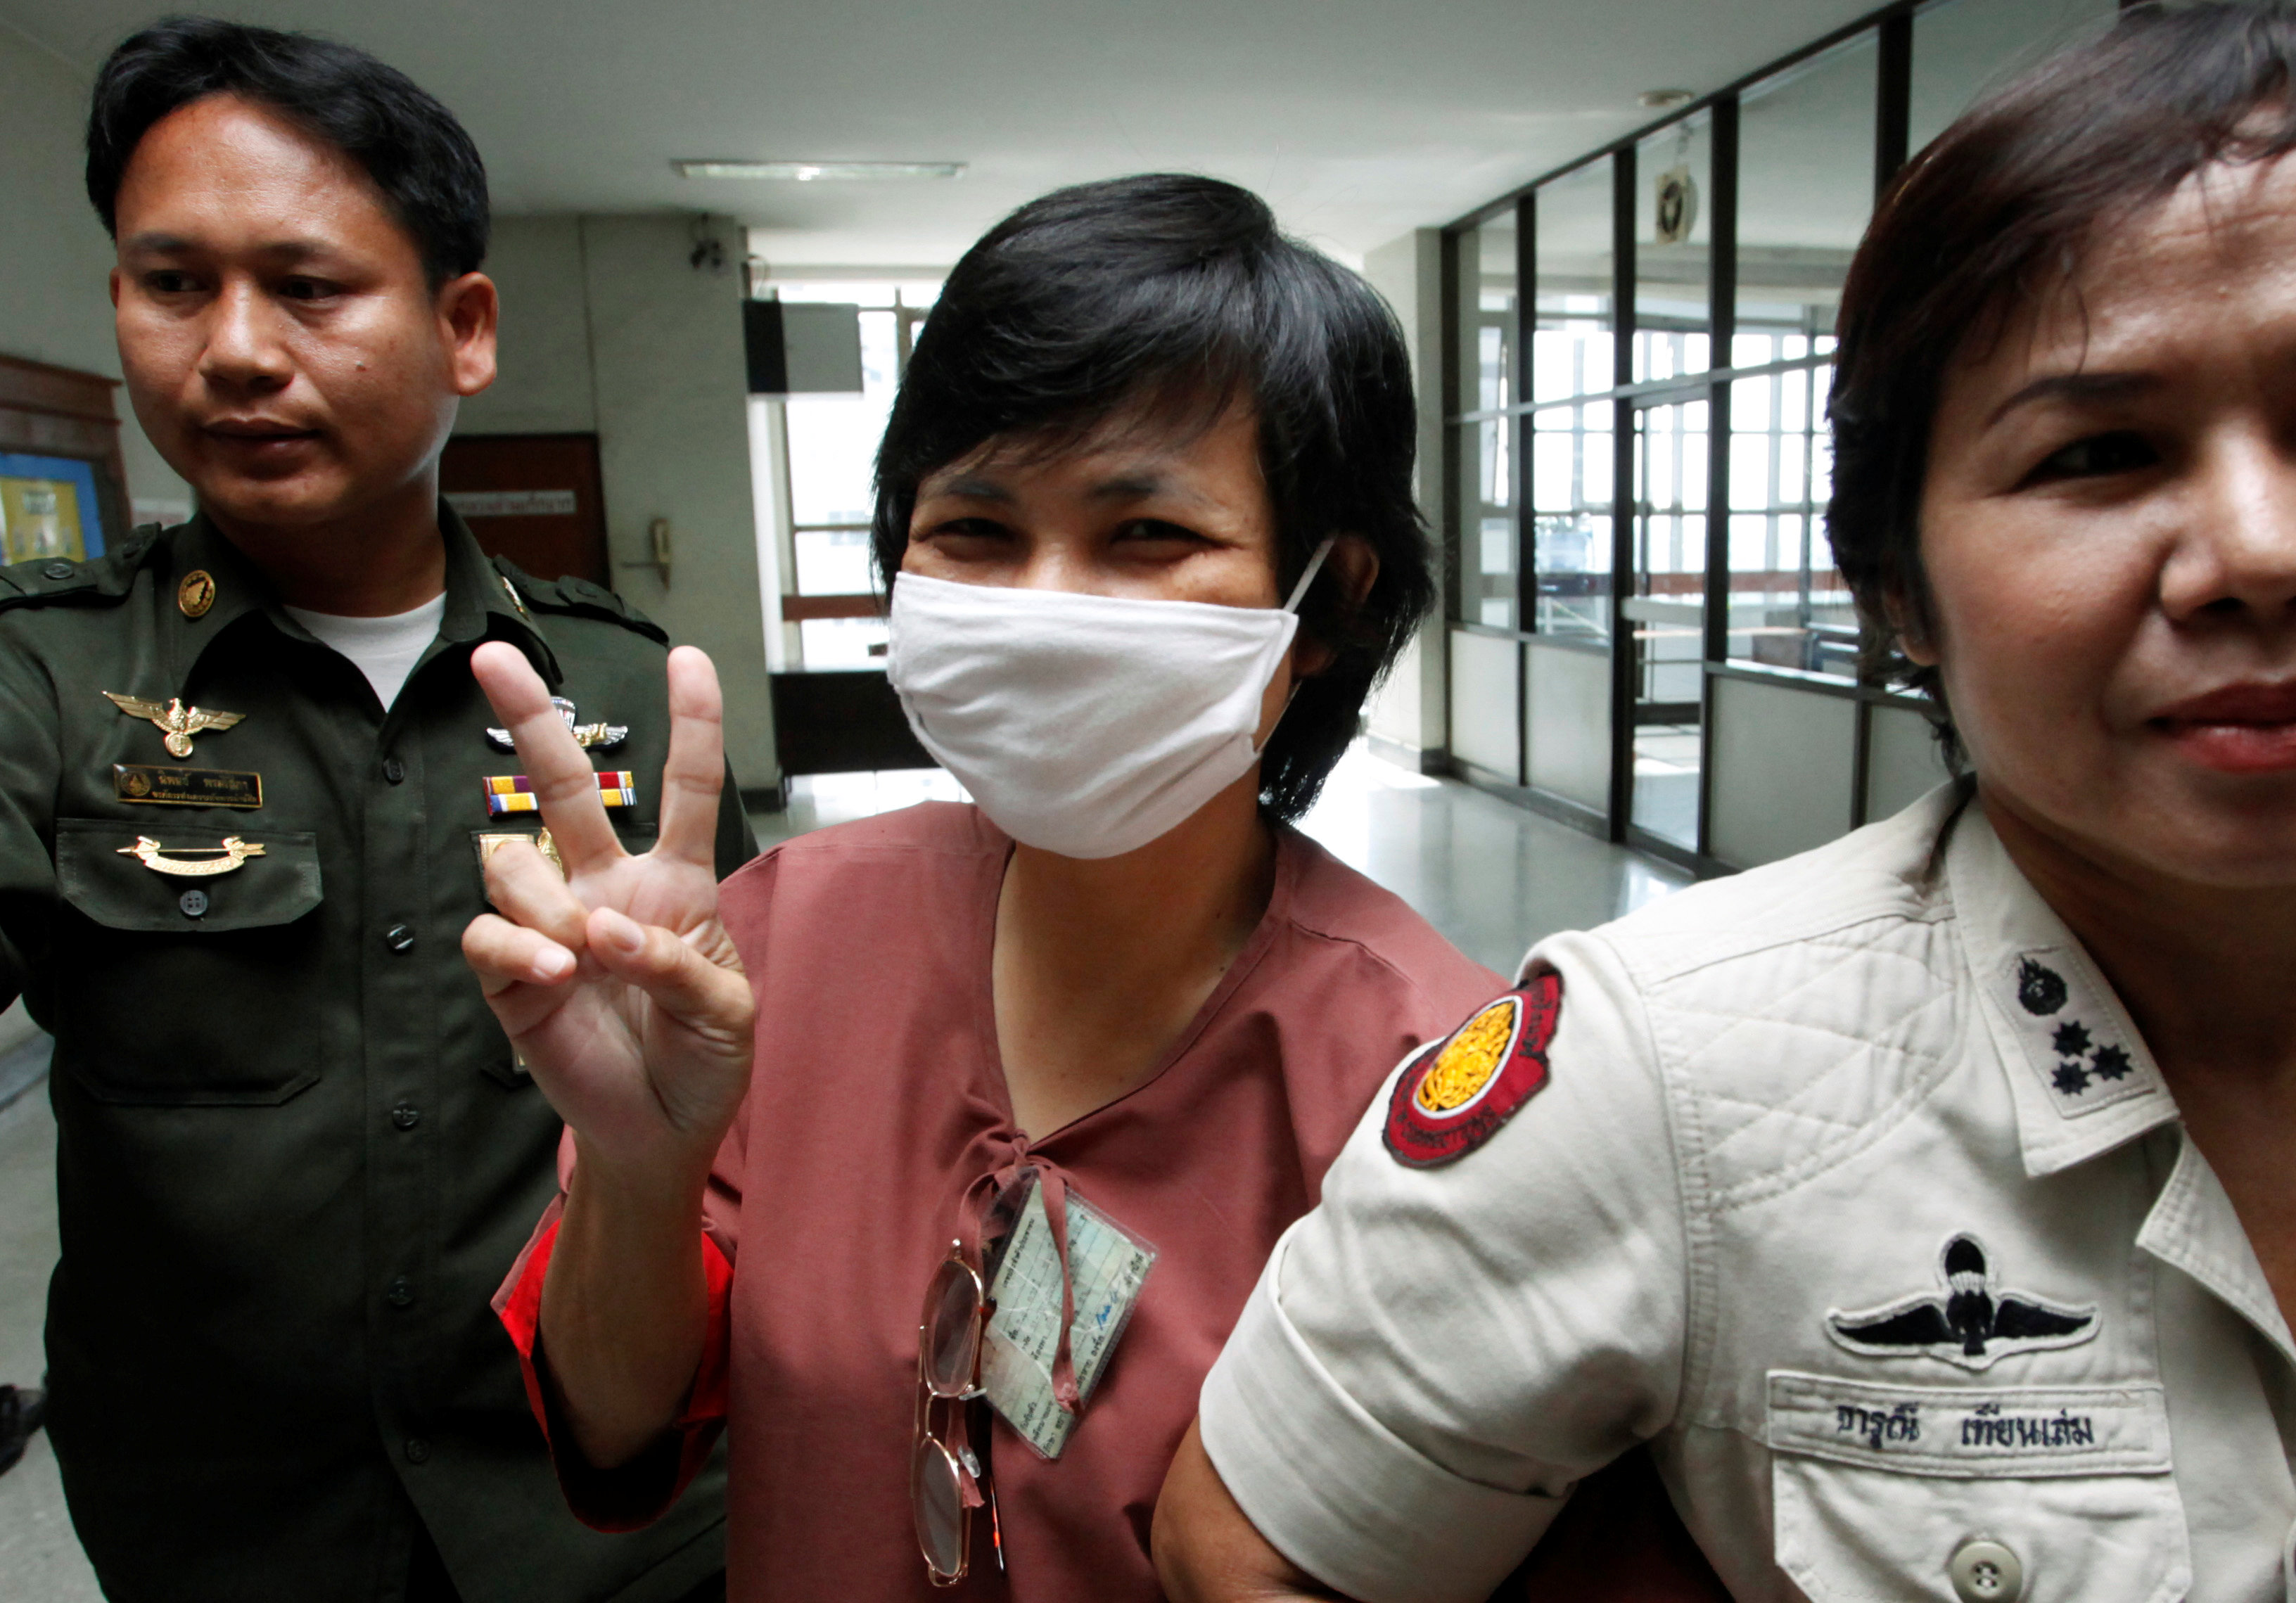 Daranee Charnchoengsilpakul, a supporter of ousted premier Thaksin Shinawatra, gestures after leaving a courtroom in Bangkok in this August 2009 file photo. | REUTERS